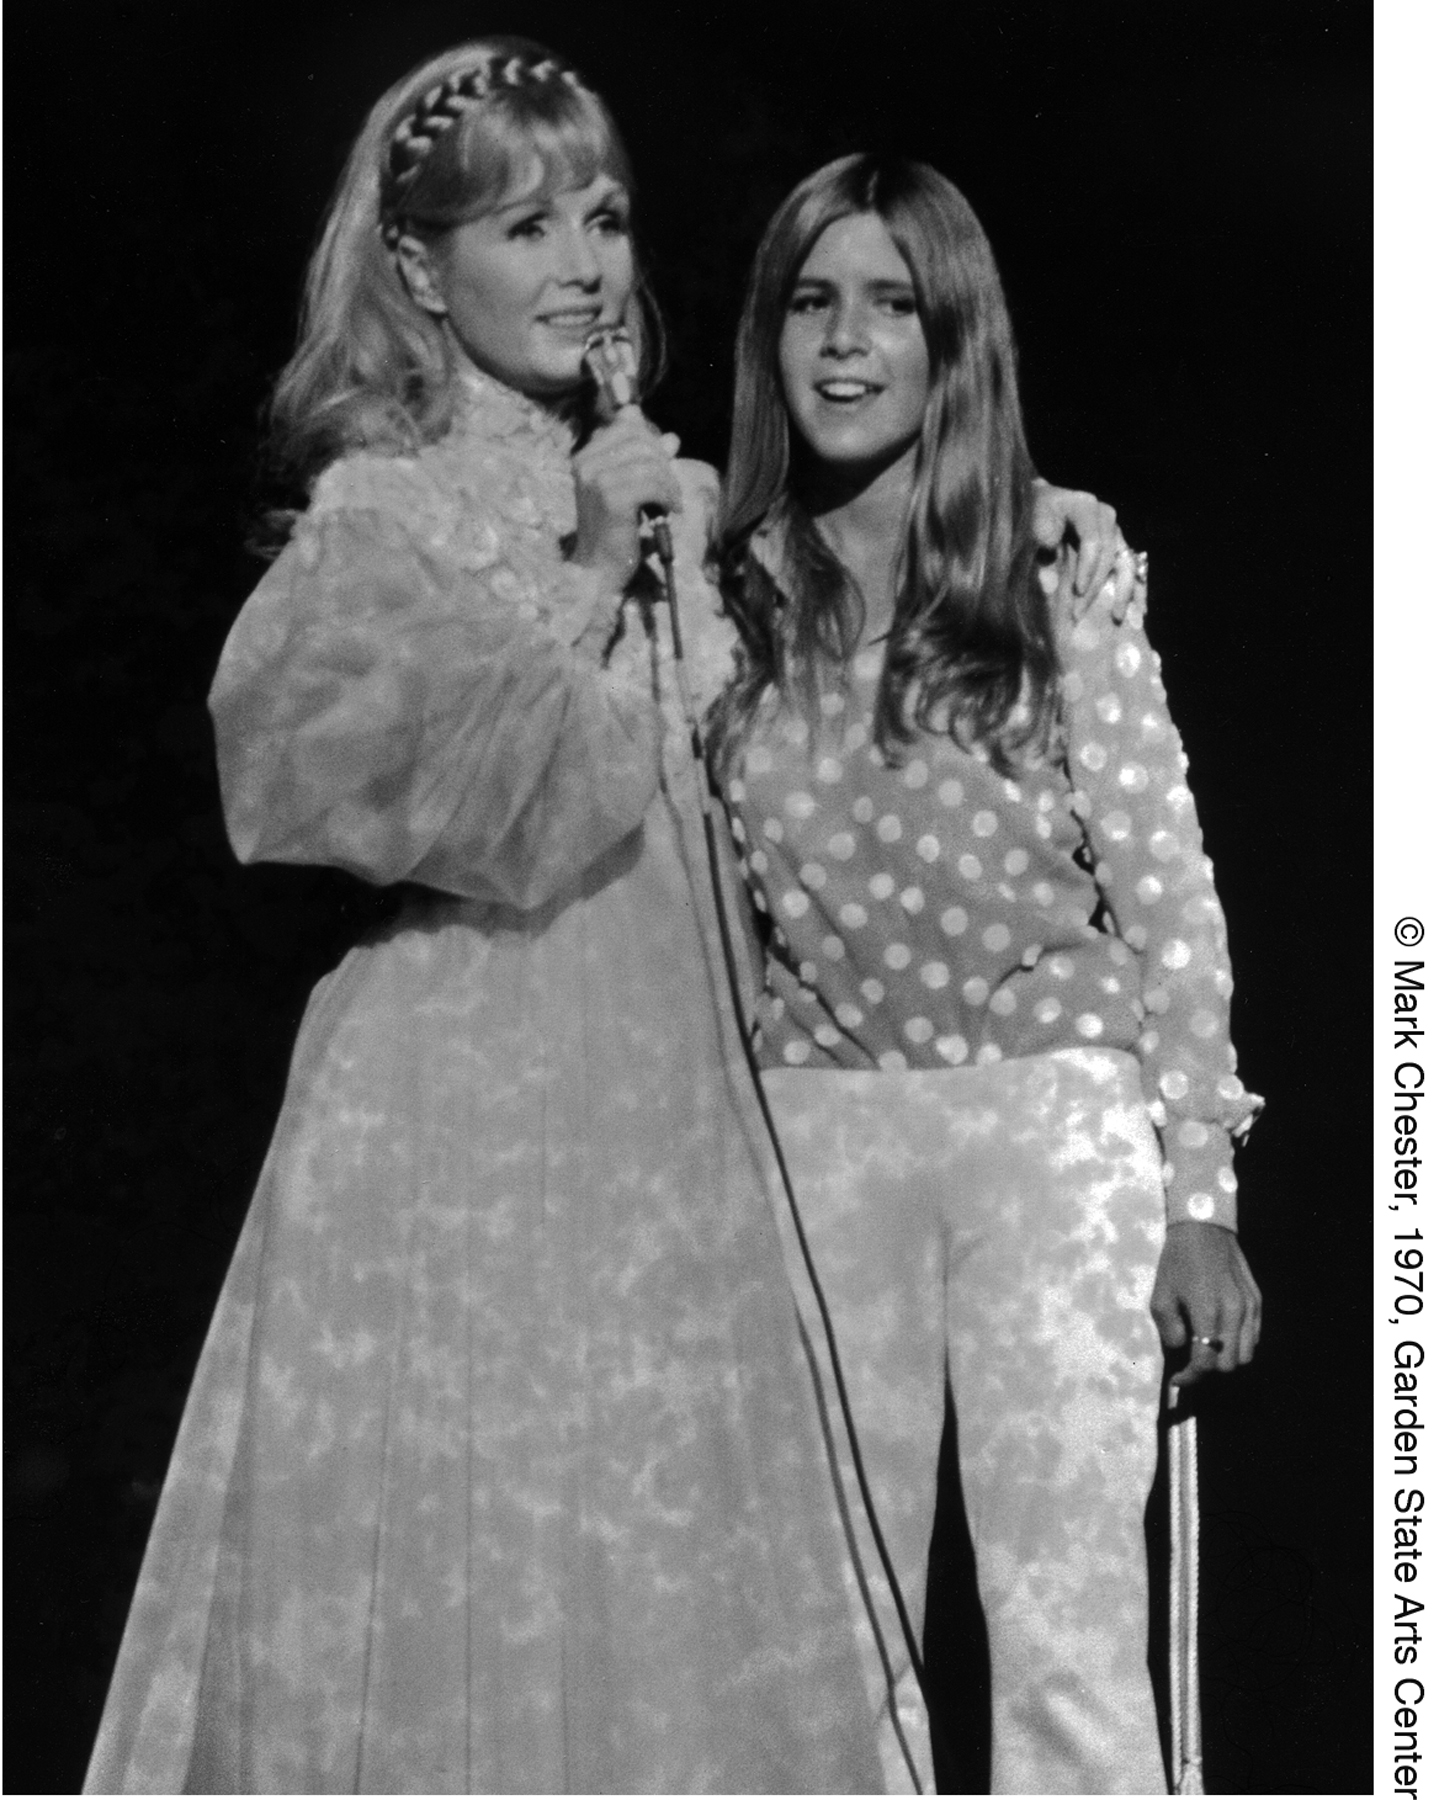 Debbie Reynolds and Carrie Fisher, 1970, Garden State Arts Center, NJ